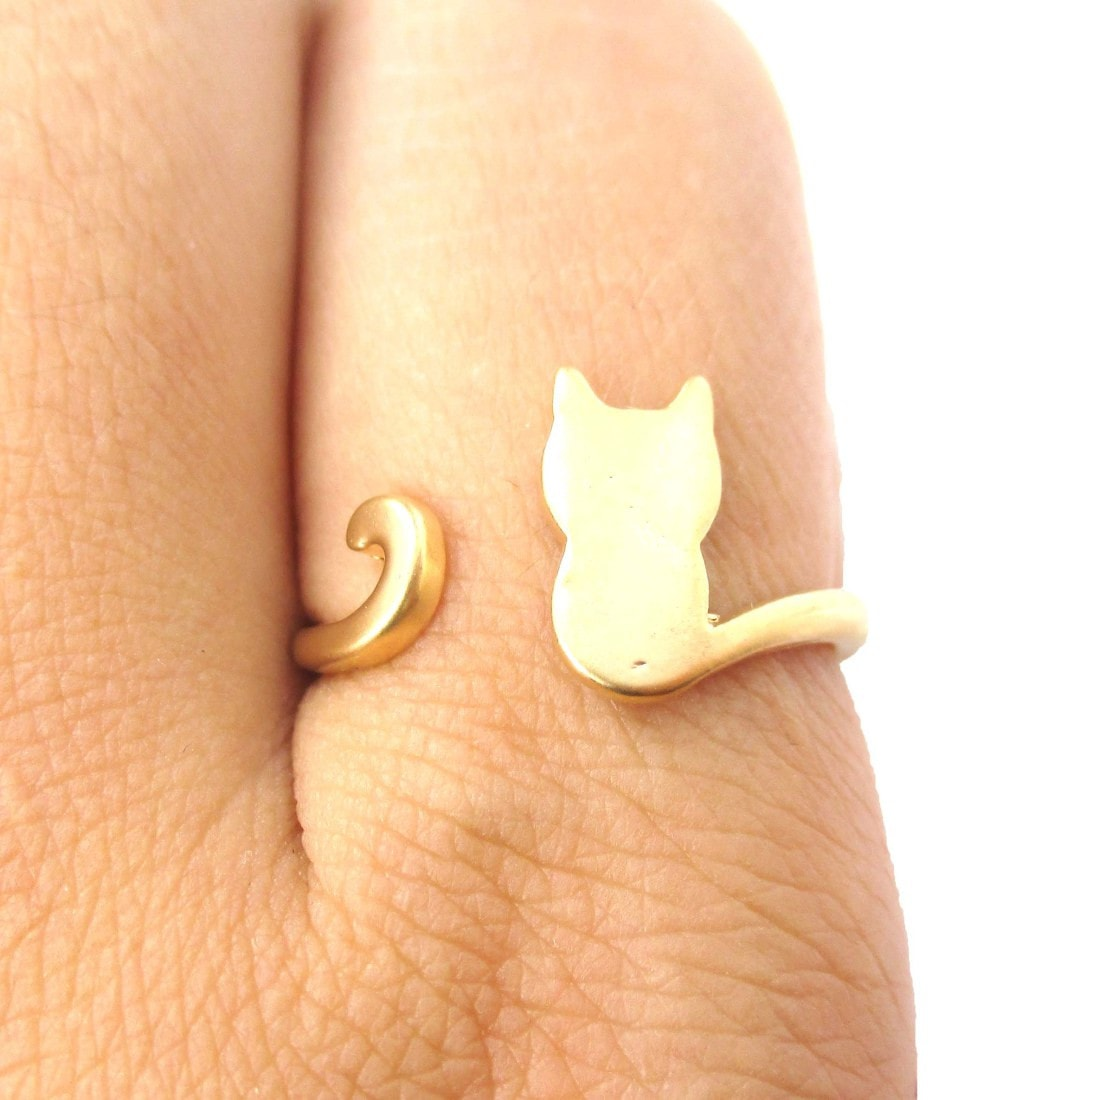 Kitty Cat Silhouette Shaped Adjustable Ring in Gold